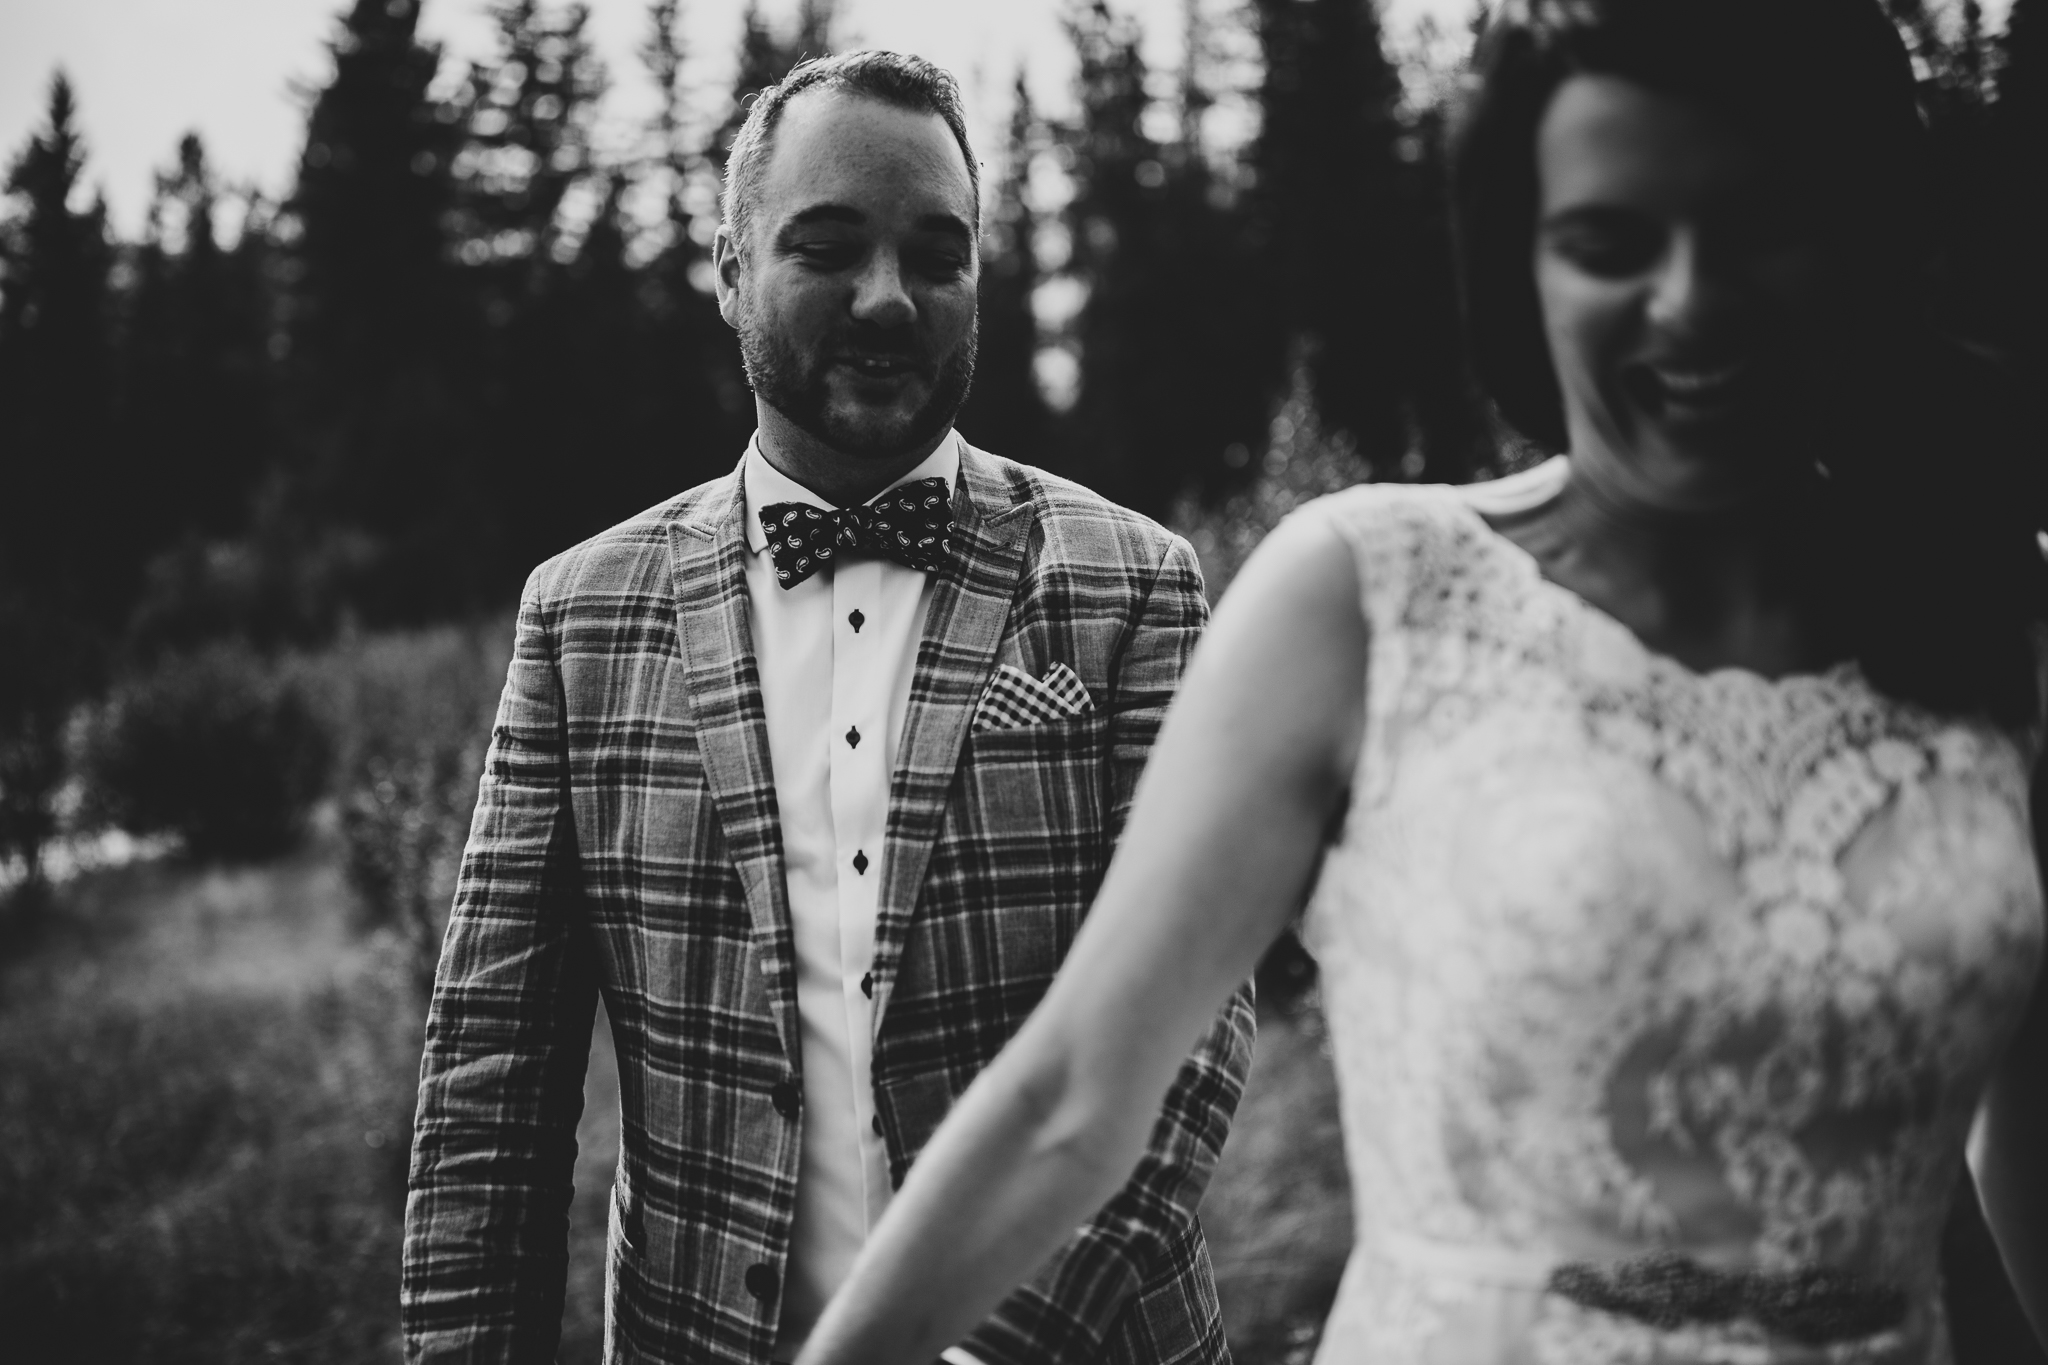 20170805-adventureelopementphotographercanada-canadaadventureelopement-adventureweddingphotographer-cedarlakewedding-goldenweddingphotographer-Rob and Dee-4182.jpg